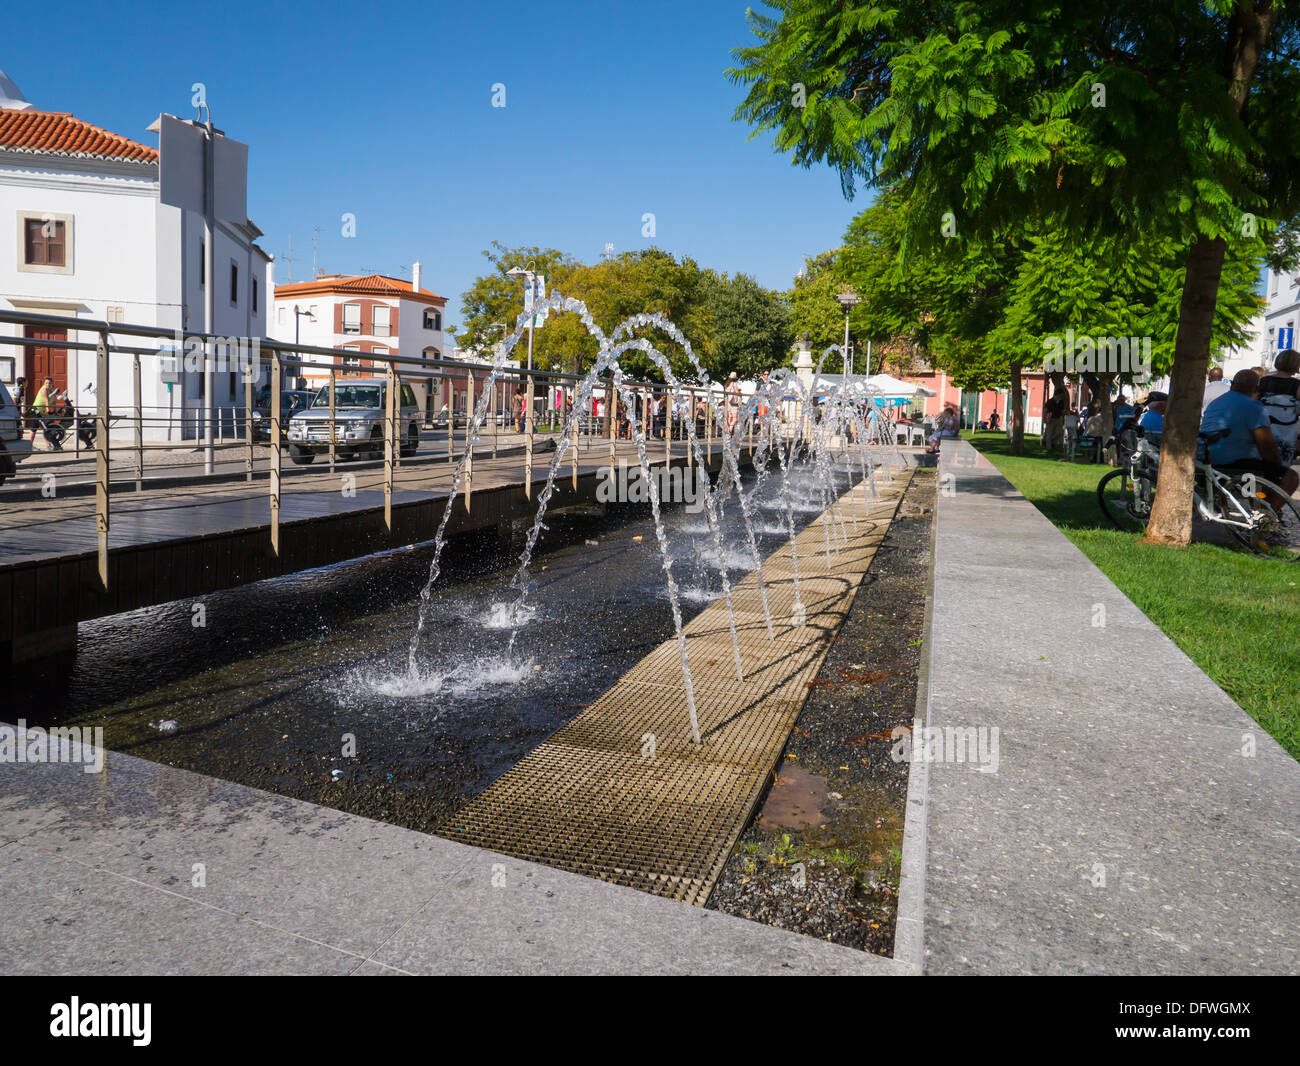 Portugal Algarve Loule Town Centre Center Modern Water Fountain Feature  Pedestrian Causeway Walkway Public Space Tree Trees Buildings People Blue  Sky